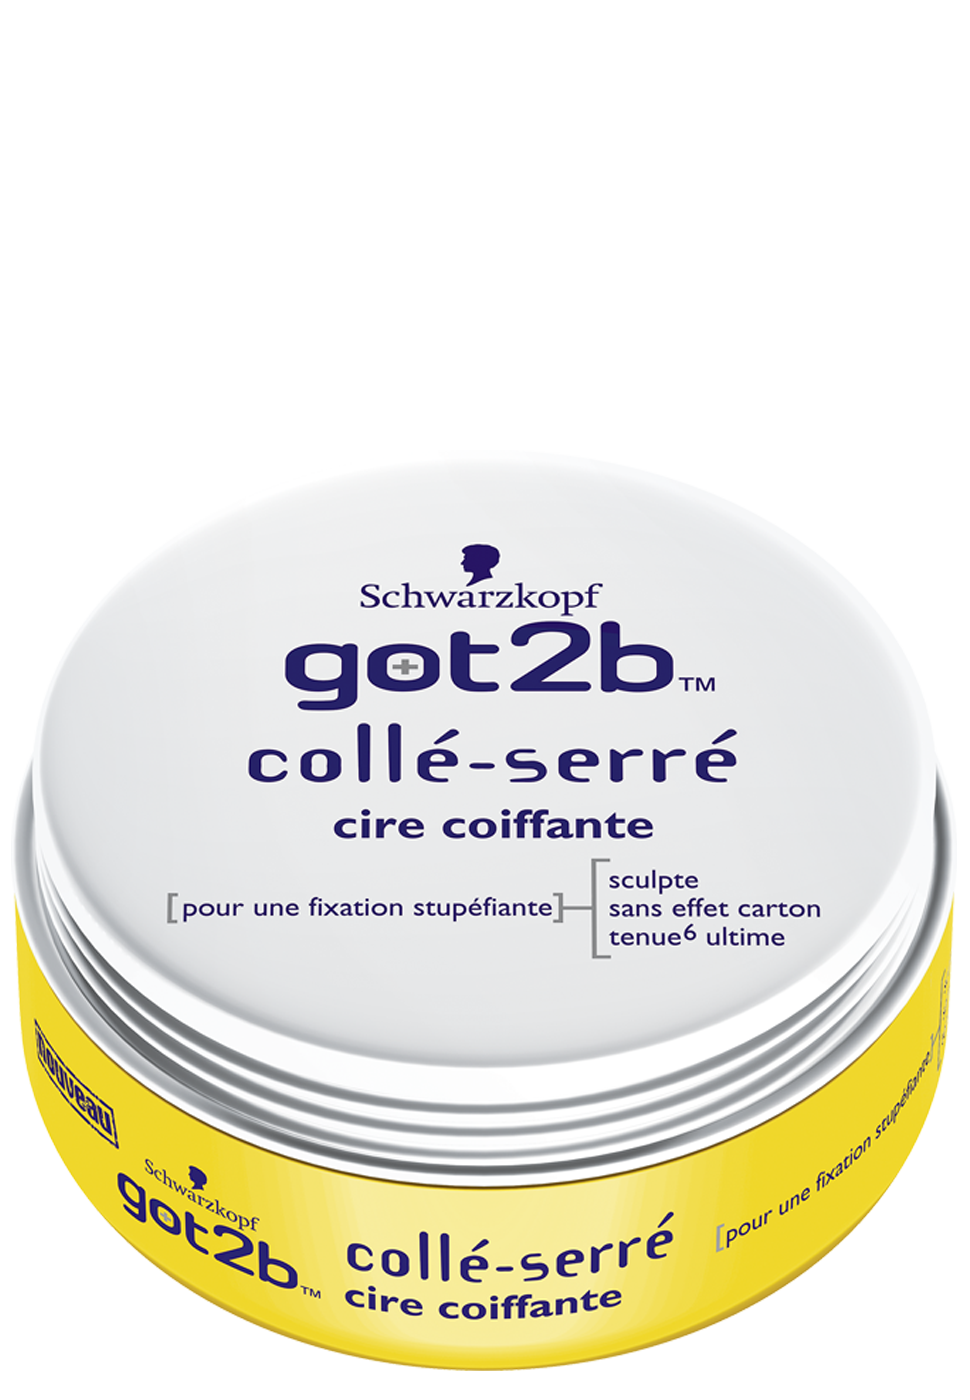 Got2be - Collé serré - Cire coiffante